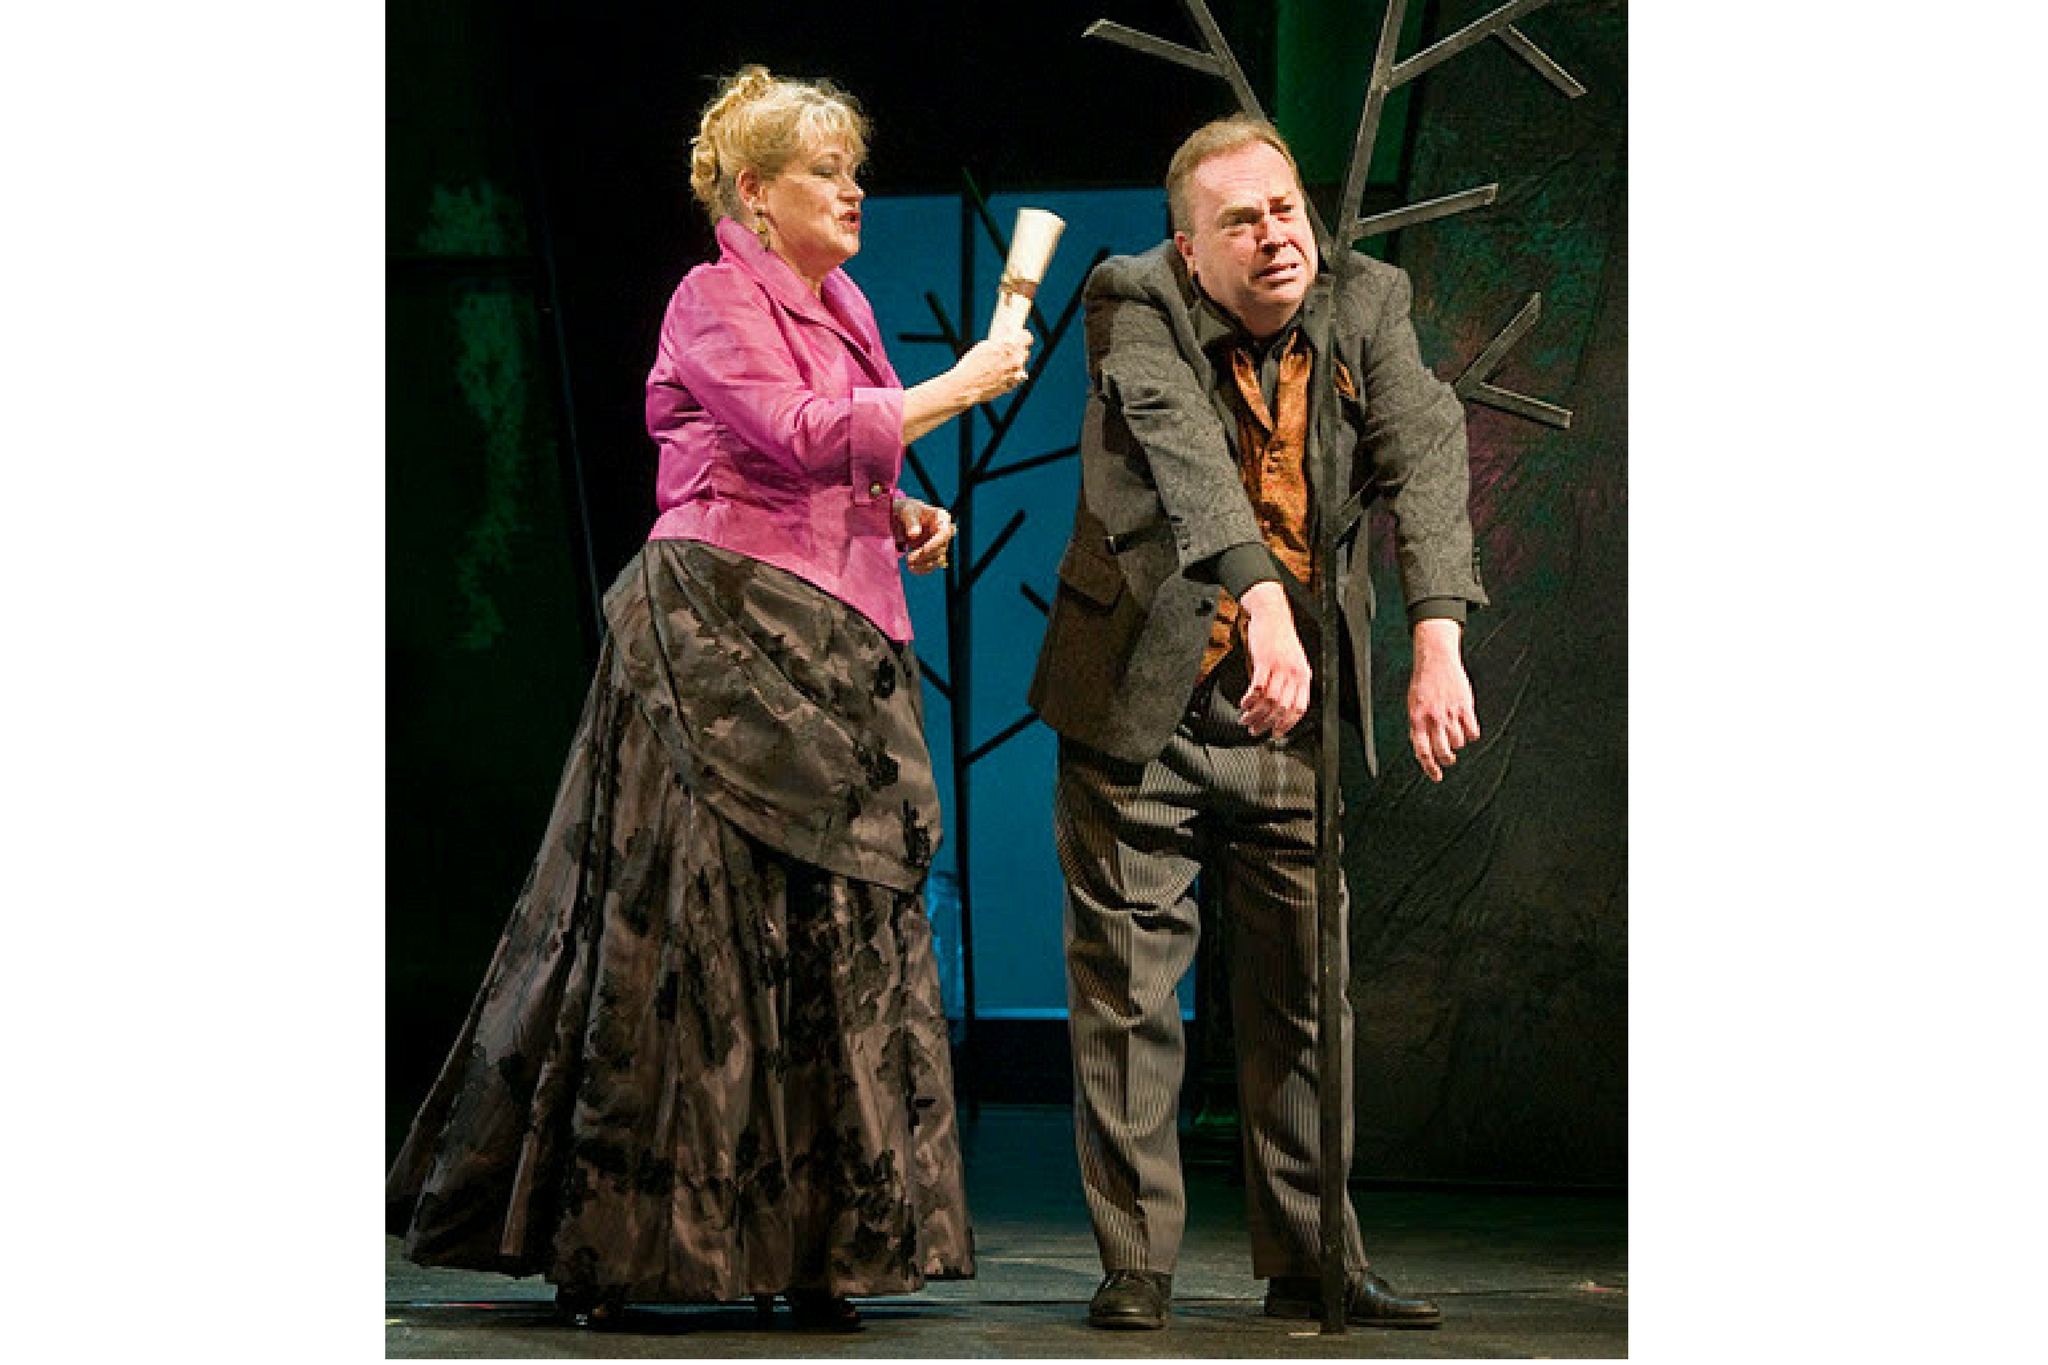 Karen MacDonald (Countess of Rousillon) and Larry Coen (Lavatch) in All's Well That Ends Well, Shakespeare on the Common 2011-Photo by Andrew Brilliant